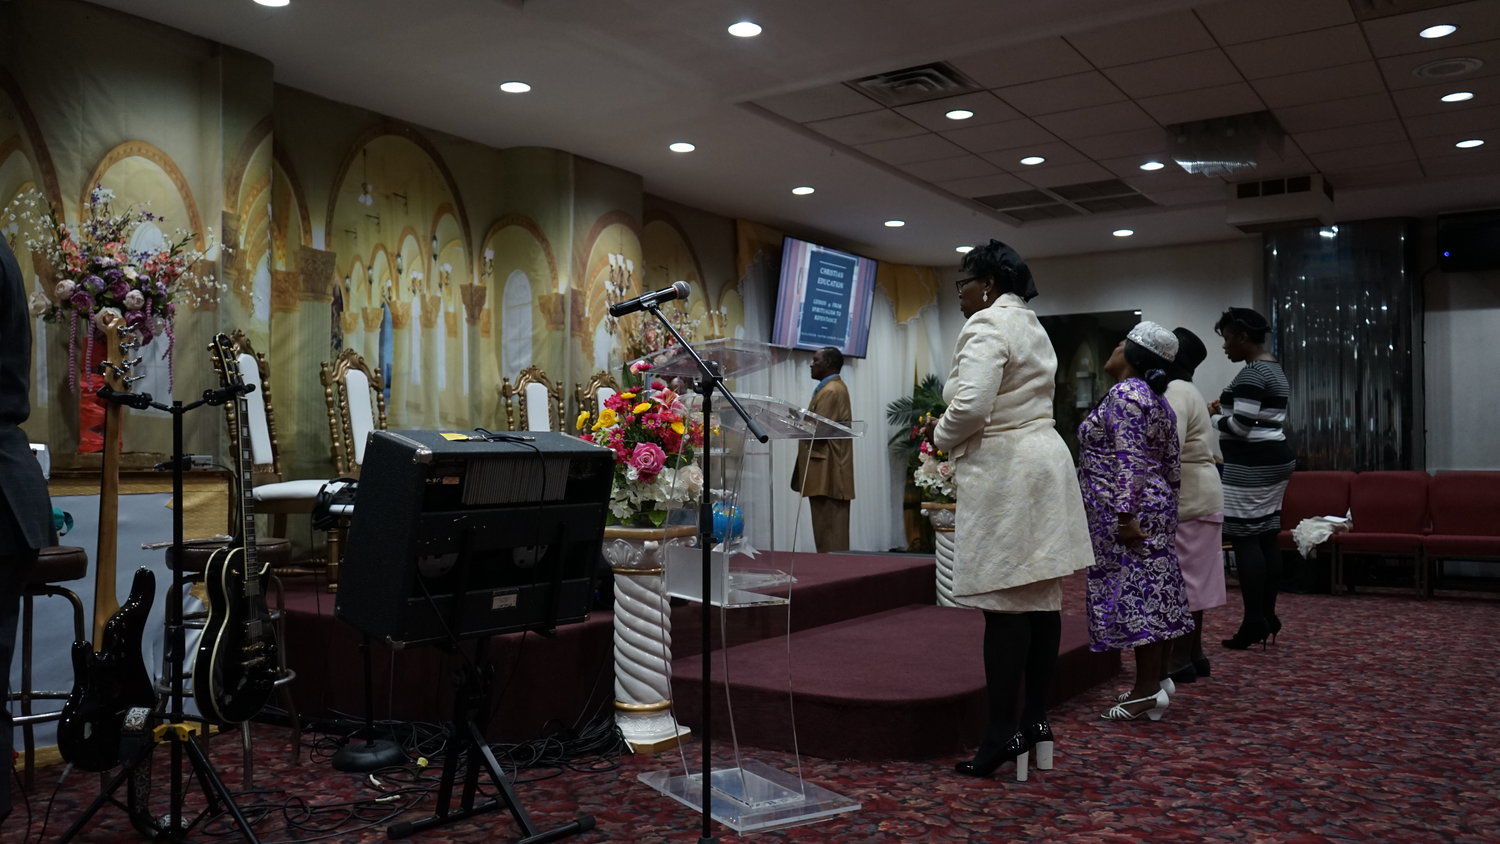 Apostolic Church worshipers prayed during a Sabbath in November.